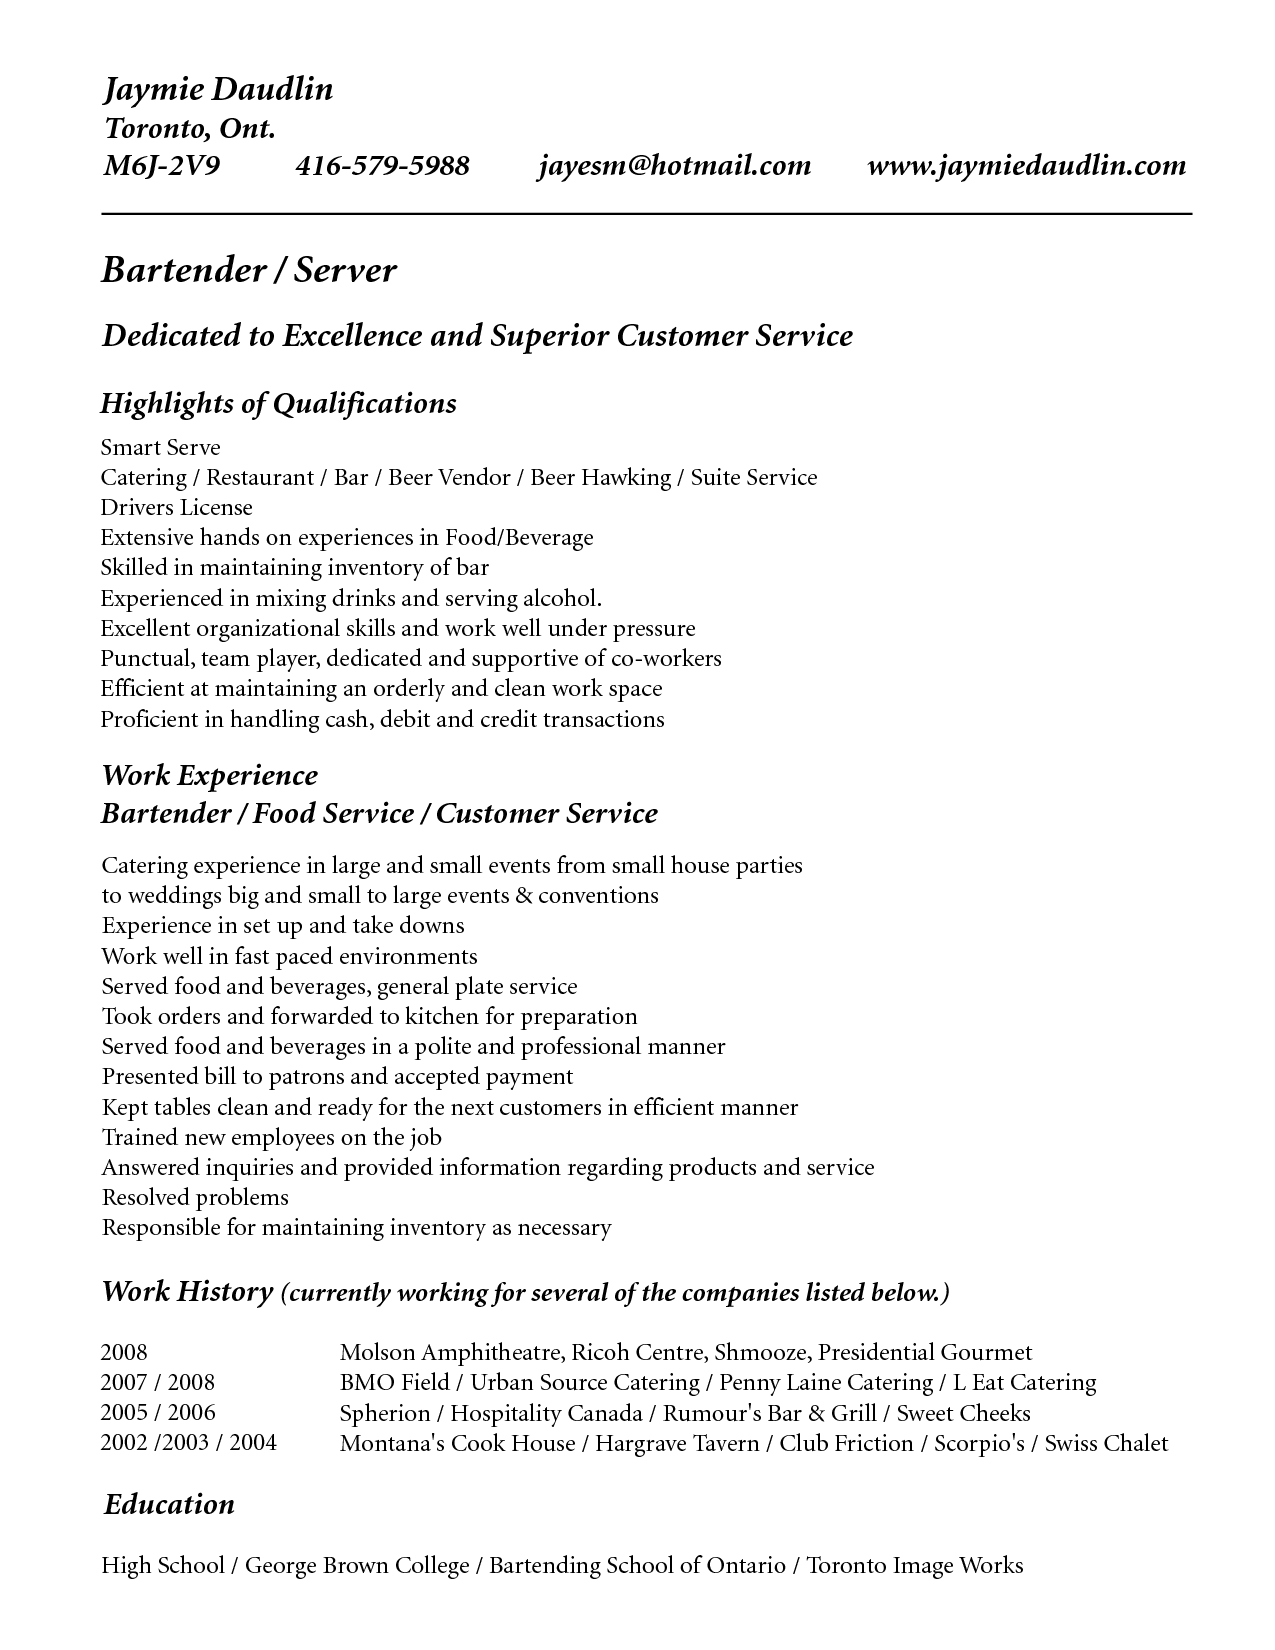 Resume Format Microsoft Word Delectable Resume Template For Bartender No Experience  Httpwww 2018